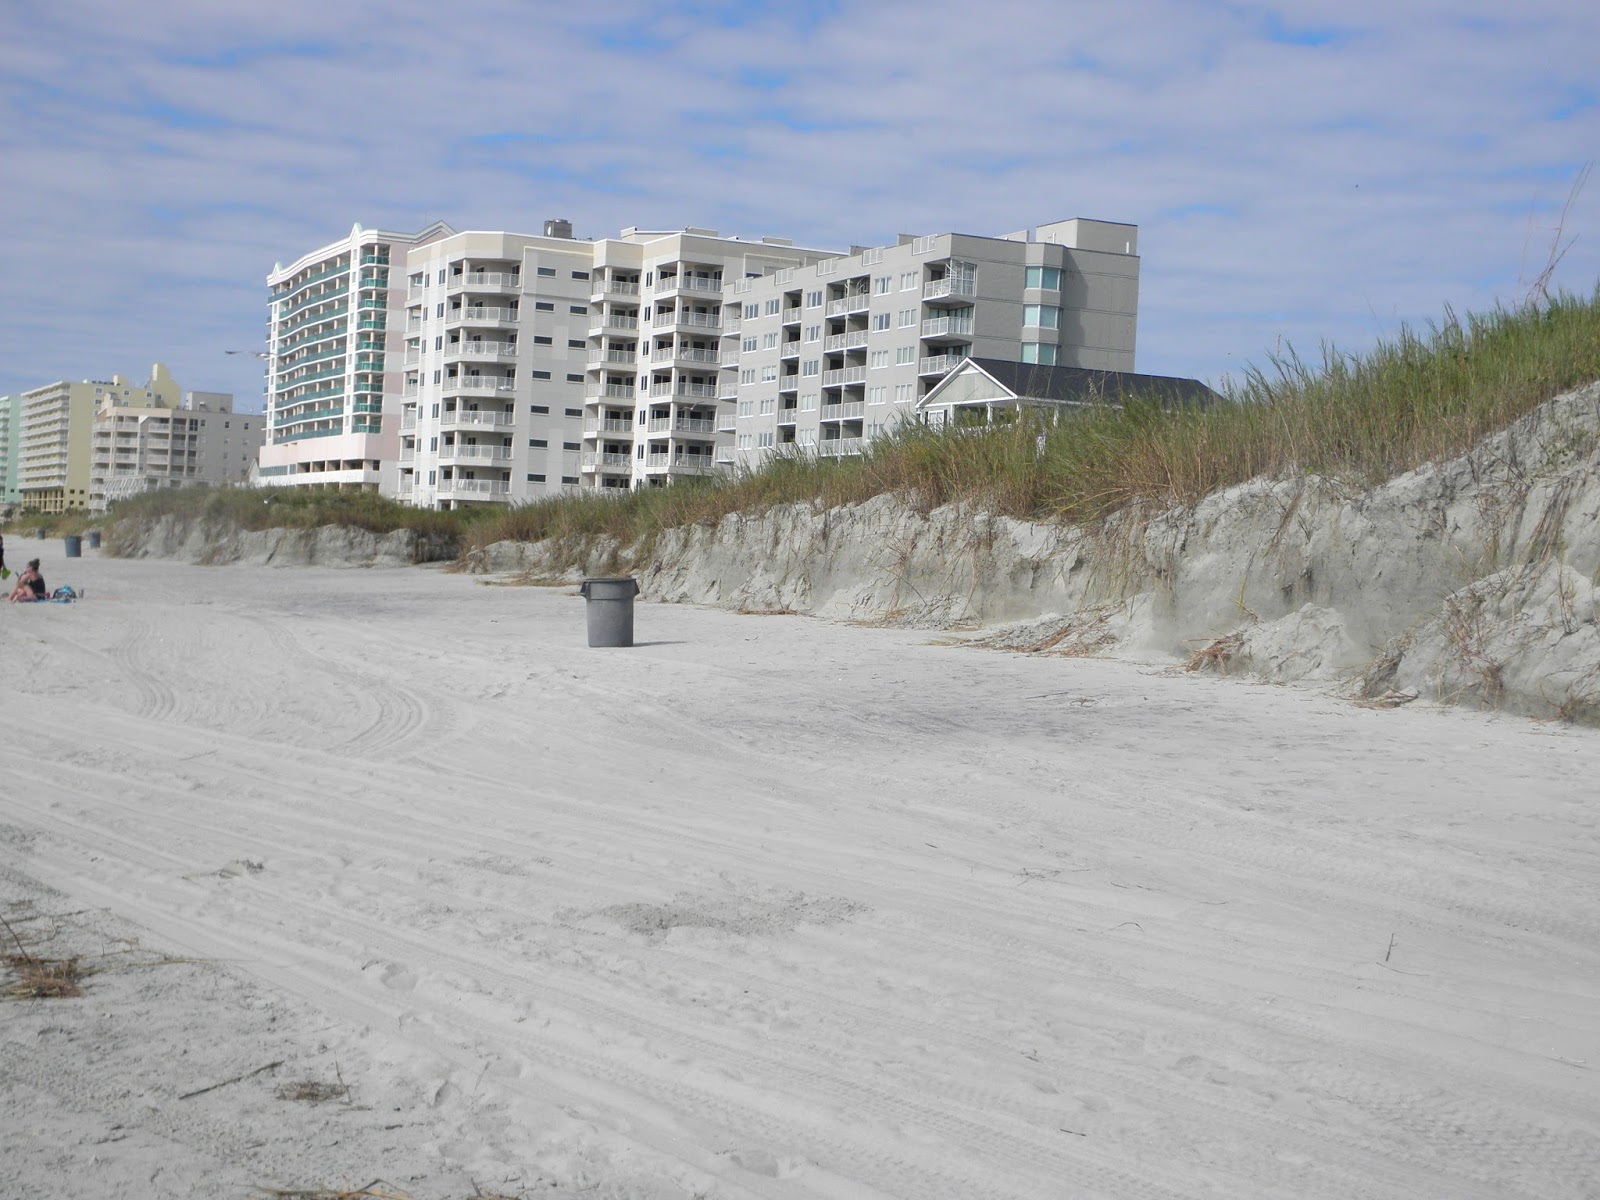 North Myrtle Beach Sea Turtle Patrol